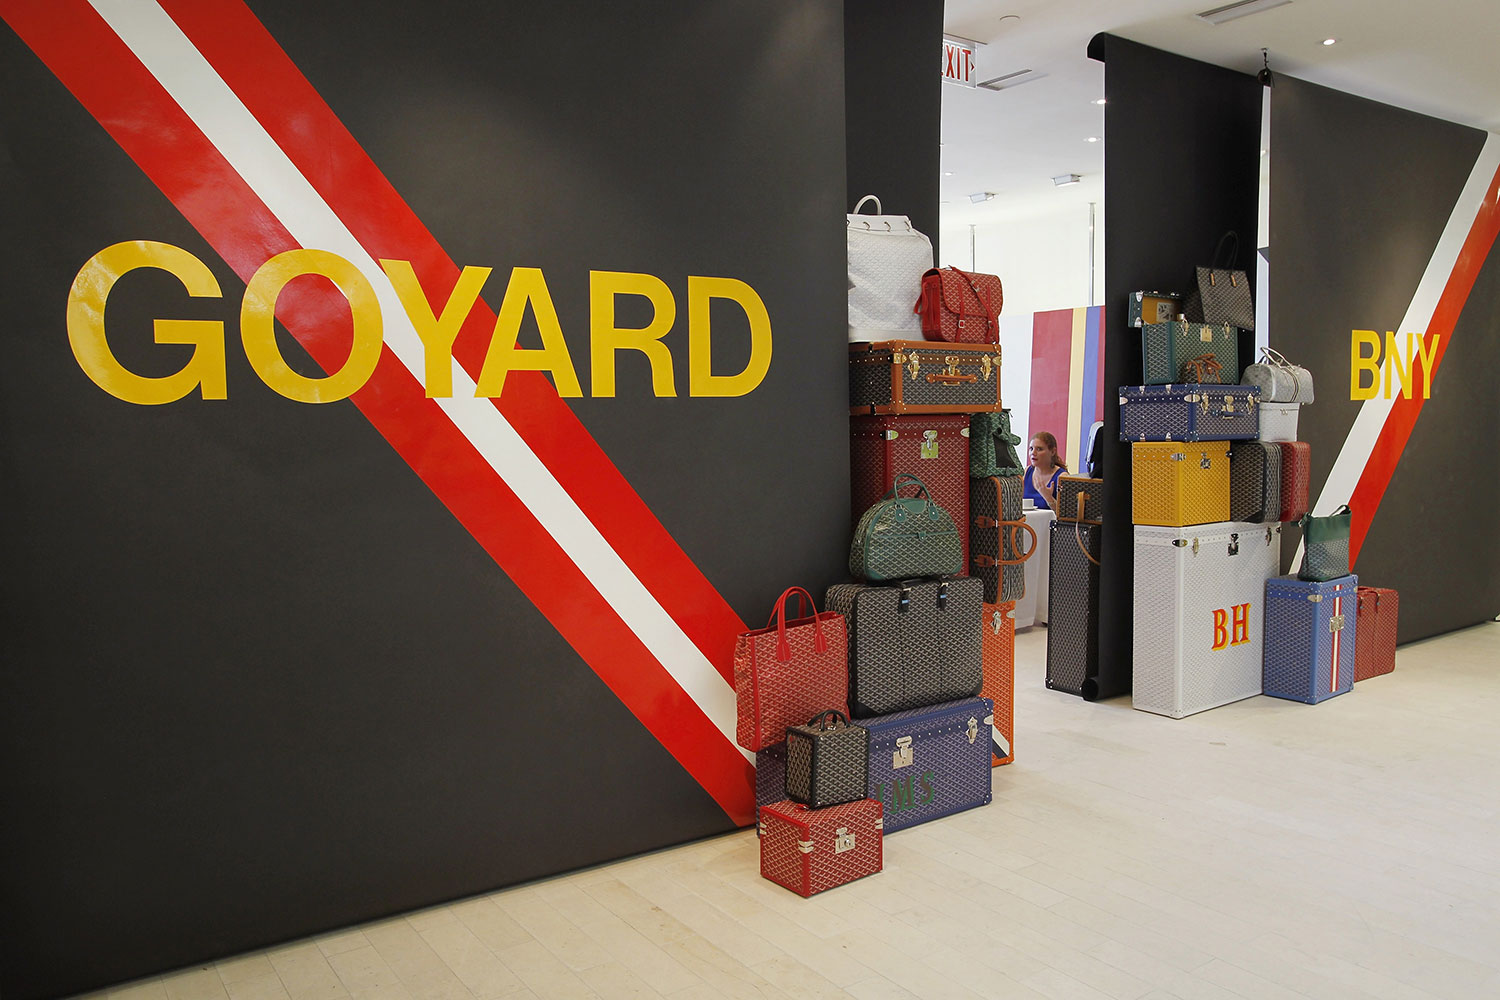 86d82d1930f Why Goyard Remains Fashion's Most Mysterious Luxury Brand - Vox